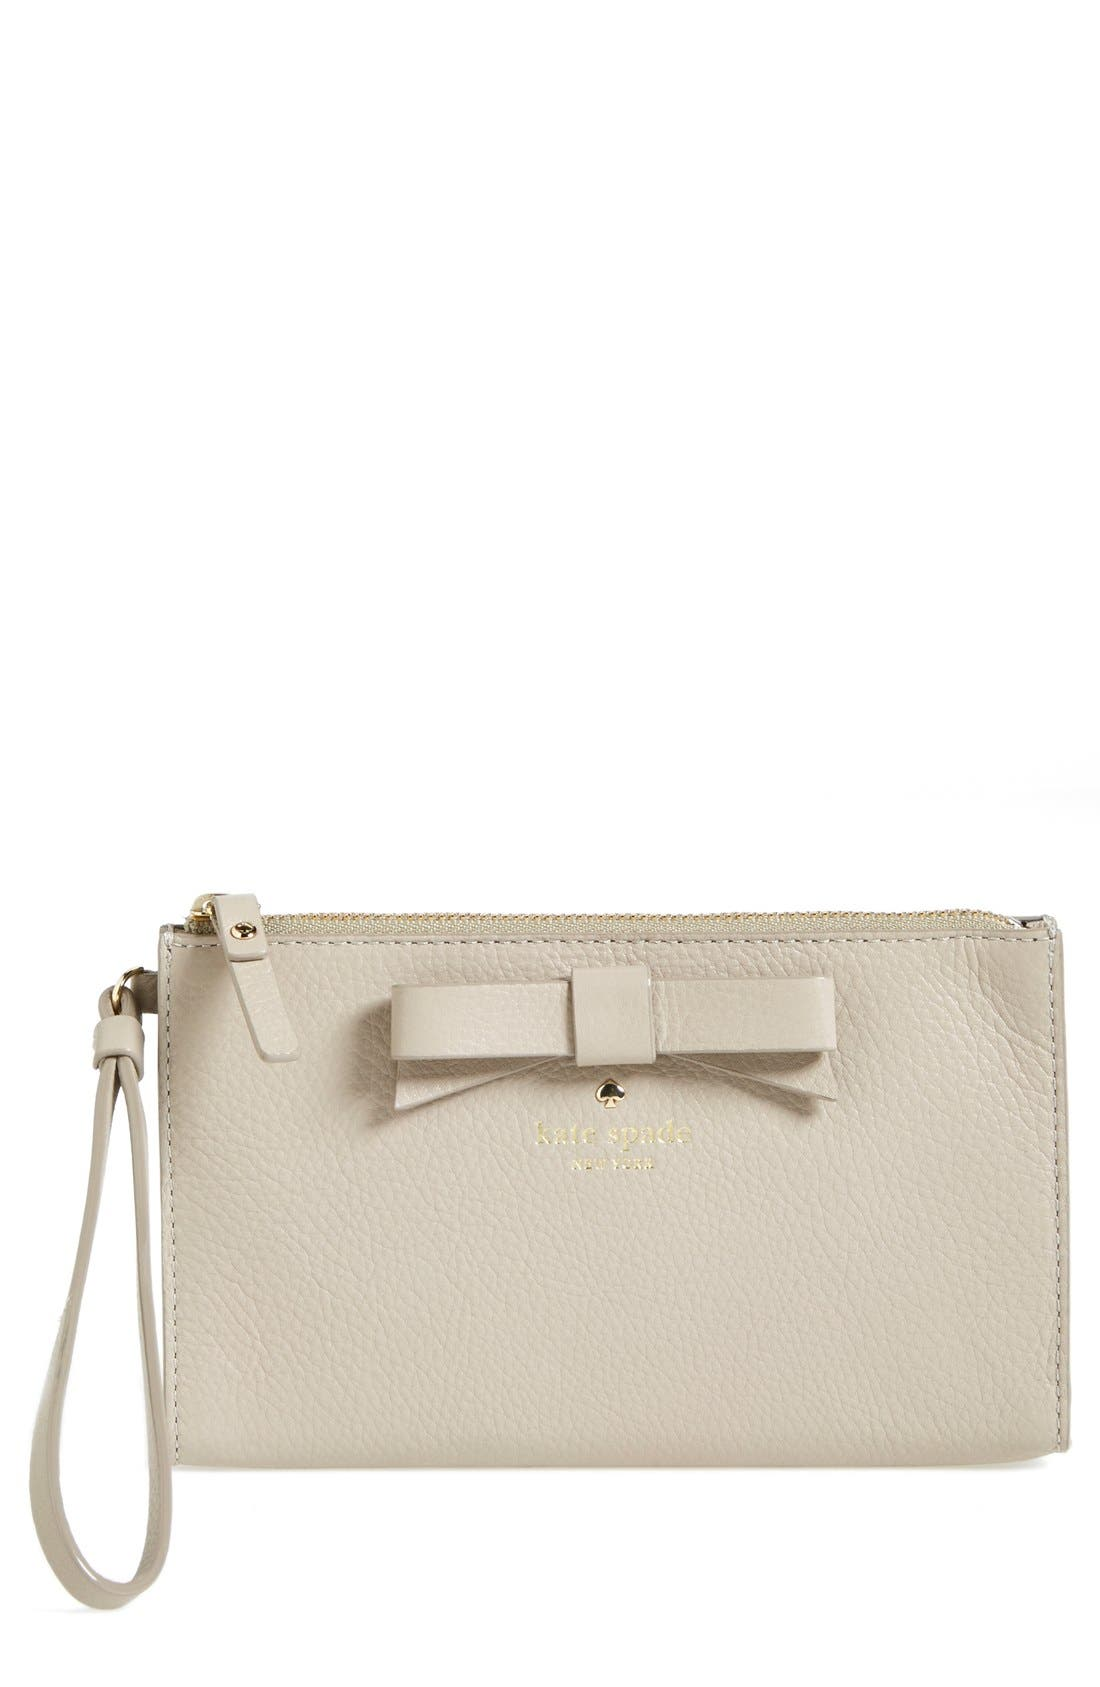 Main Image - kate spade new york 'north court - bow leyna' pebbled leather wristlet clutch (Nordstrom Exclusive)